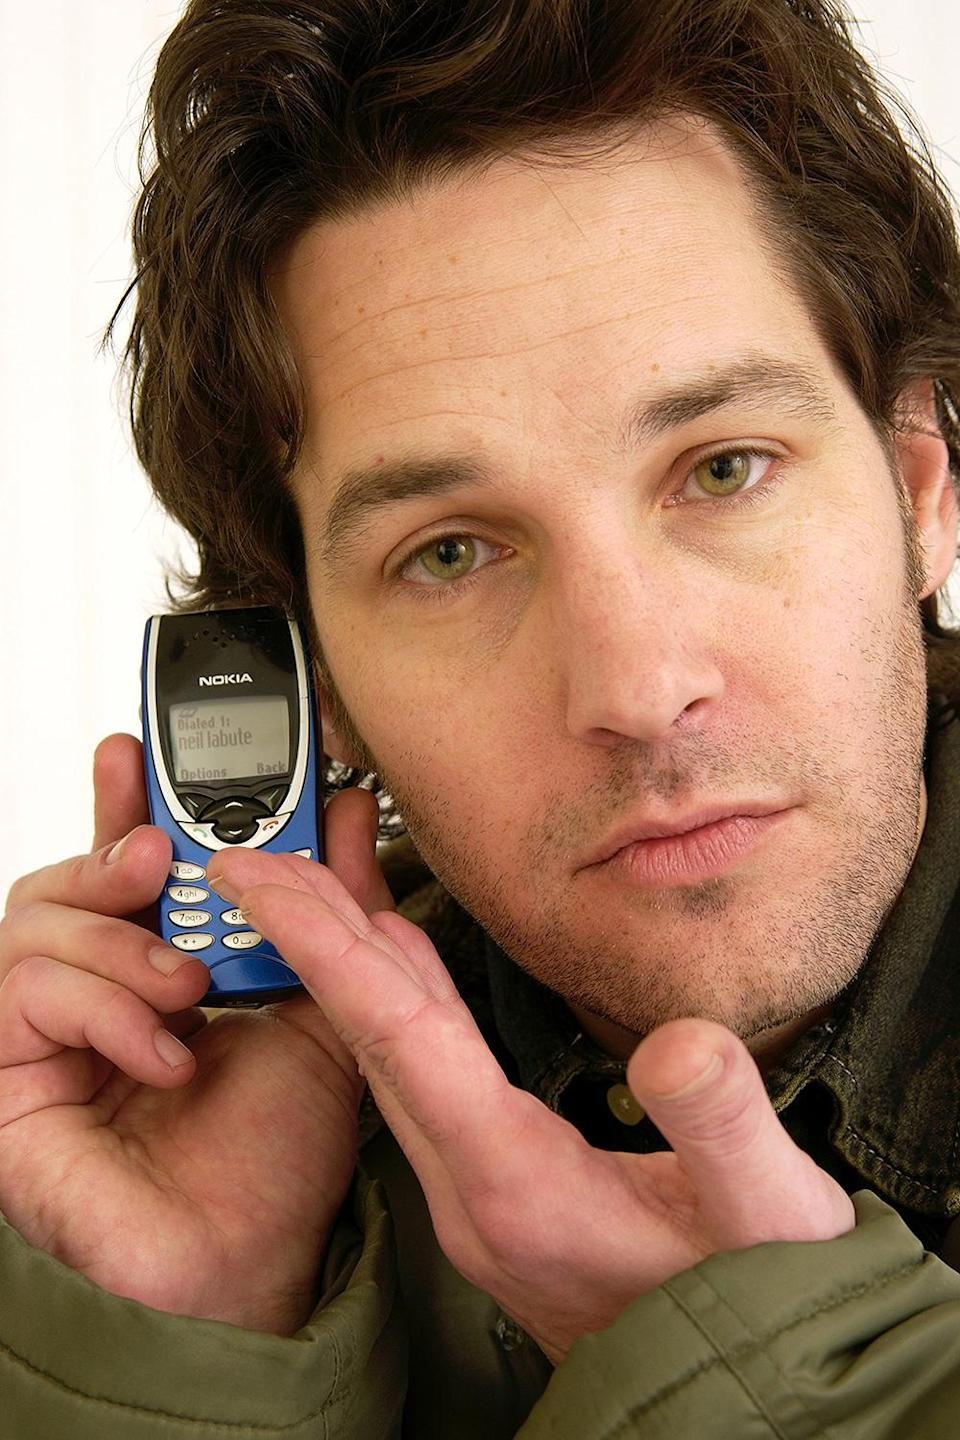 <p>The only giveaway that this is a throwback photo (taken at Sundance in 2003) is the fact that he's using his tiny Nokia brick phone. </p>